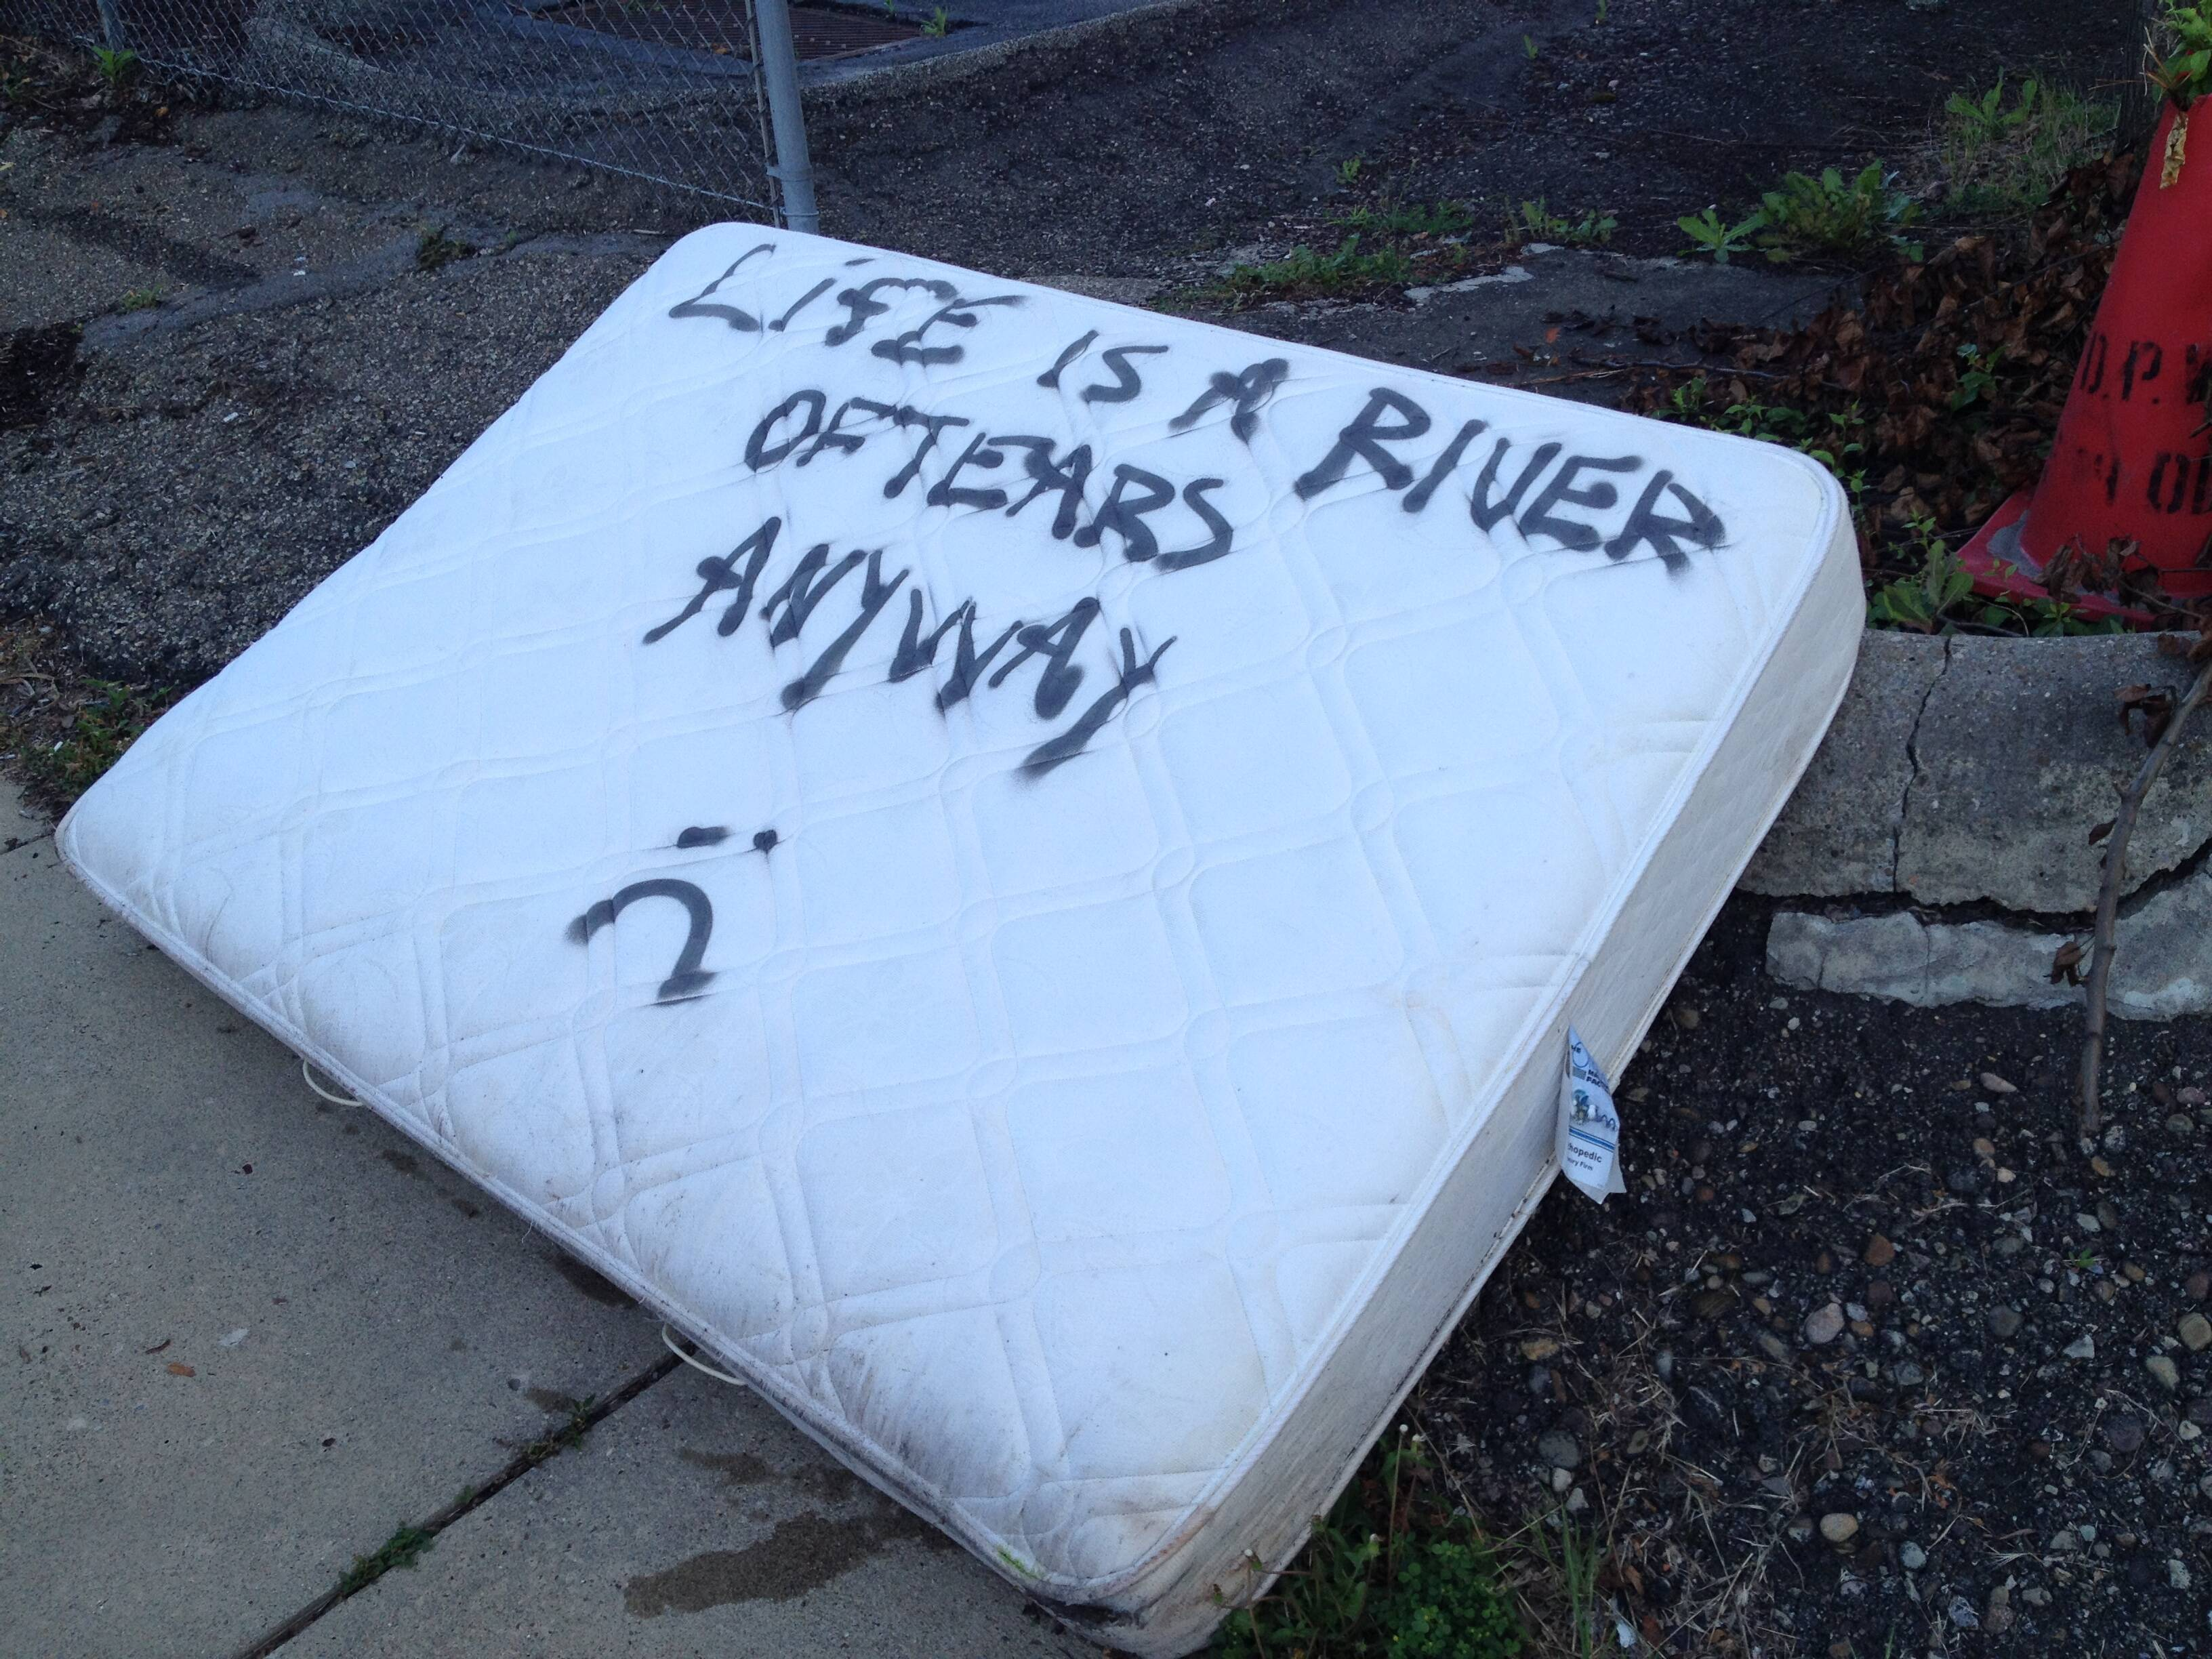 A sad mattress in a sad parking lot in Bloomfield, not far from that duplex. (June 2015)